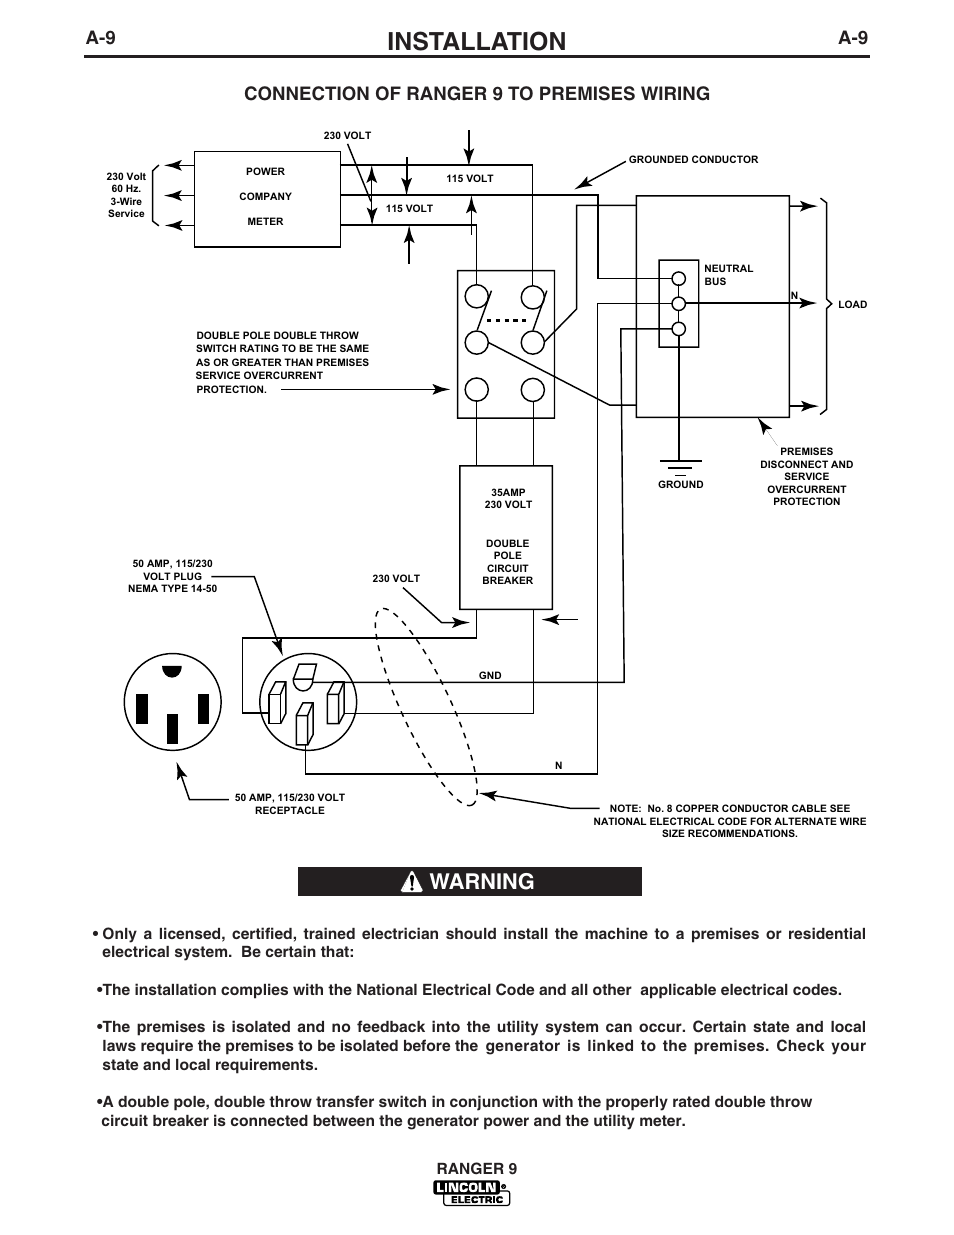 Installation, Warning, A-9 connection of ranger 9 to premises wiring |  Lincoln Electric IM753 RANGER 9 User Manual | Page 17 / 44